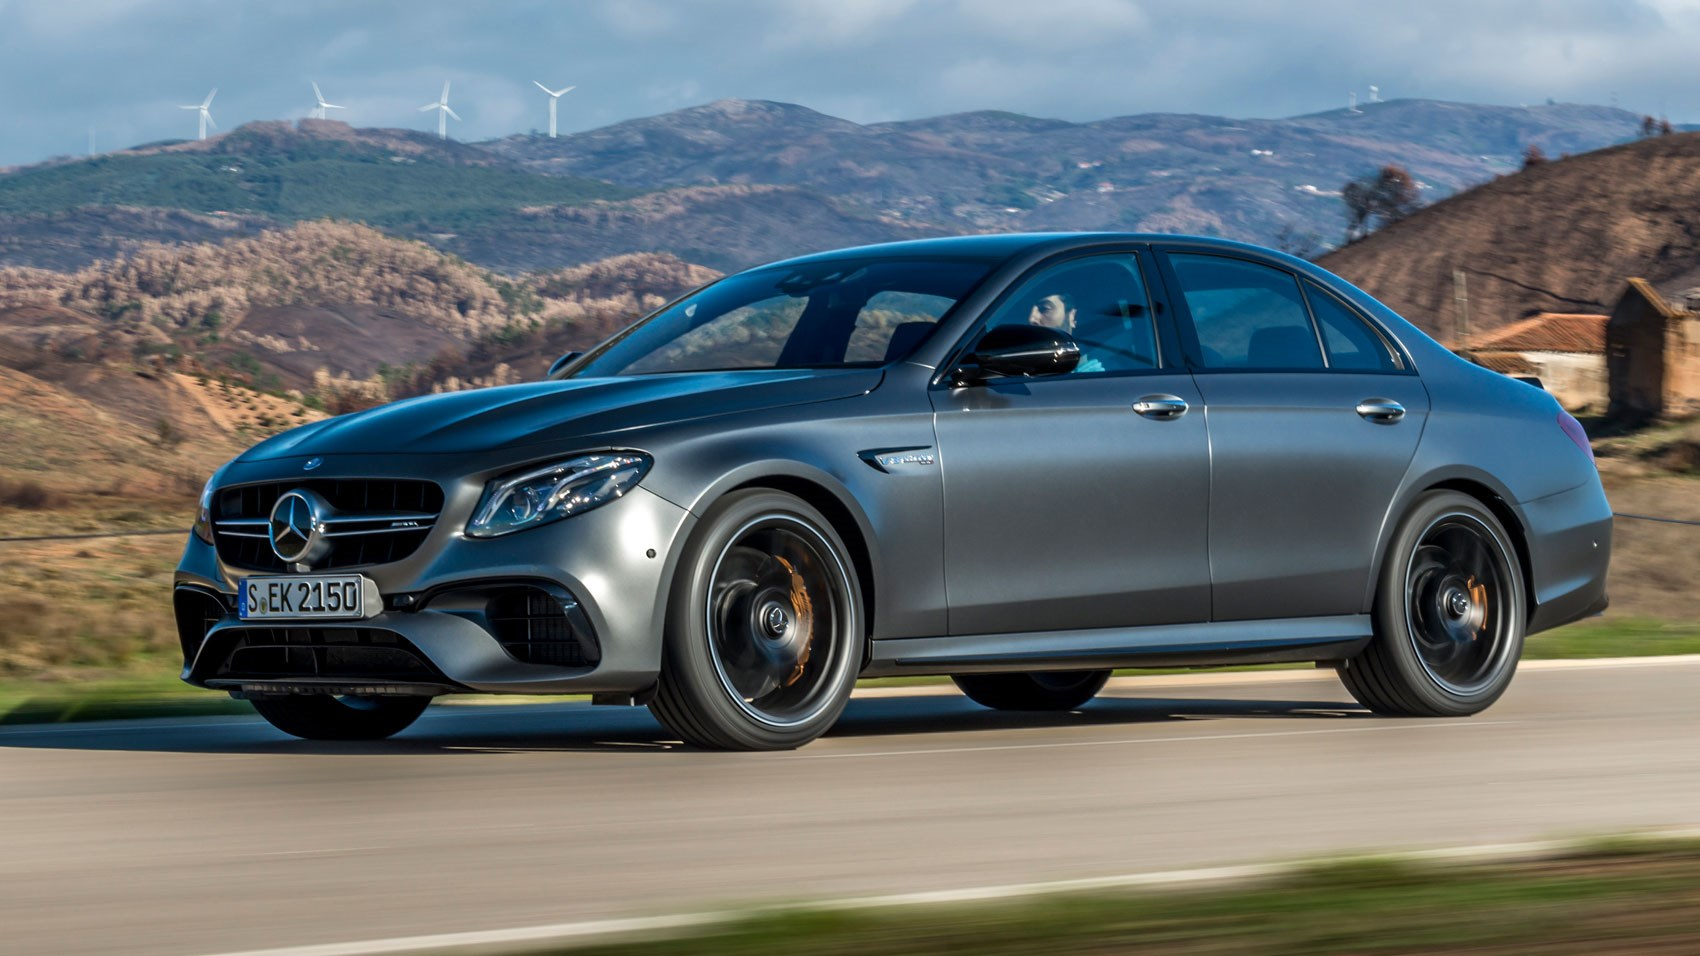 2017 Mercedes-AMG E63 S 4Matic+